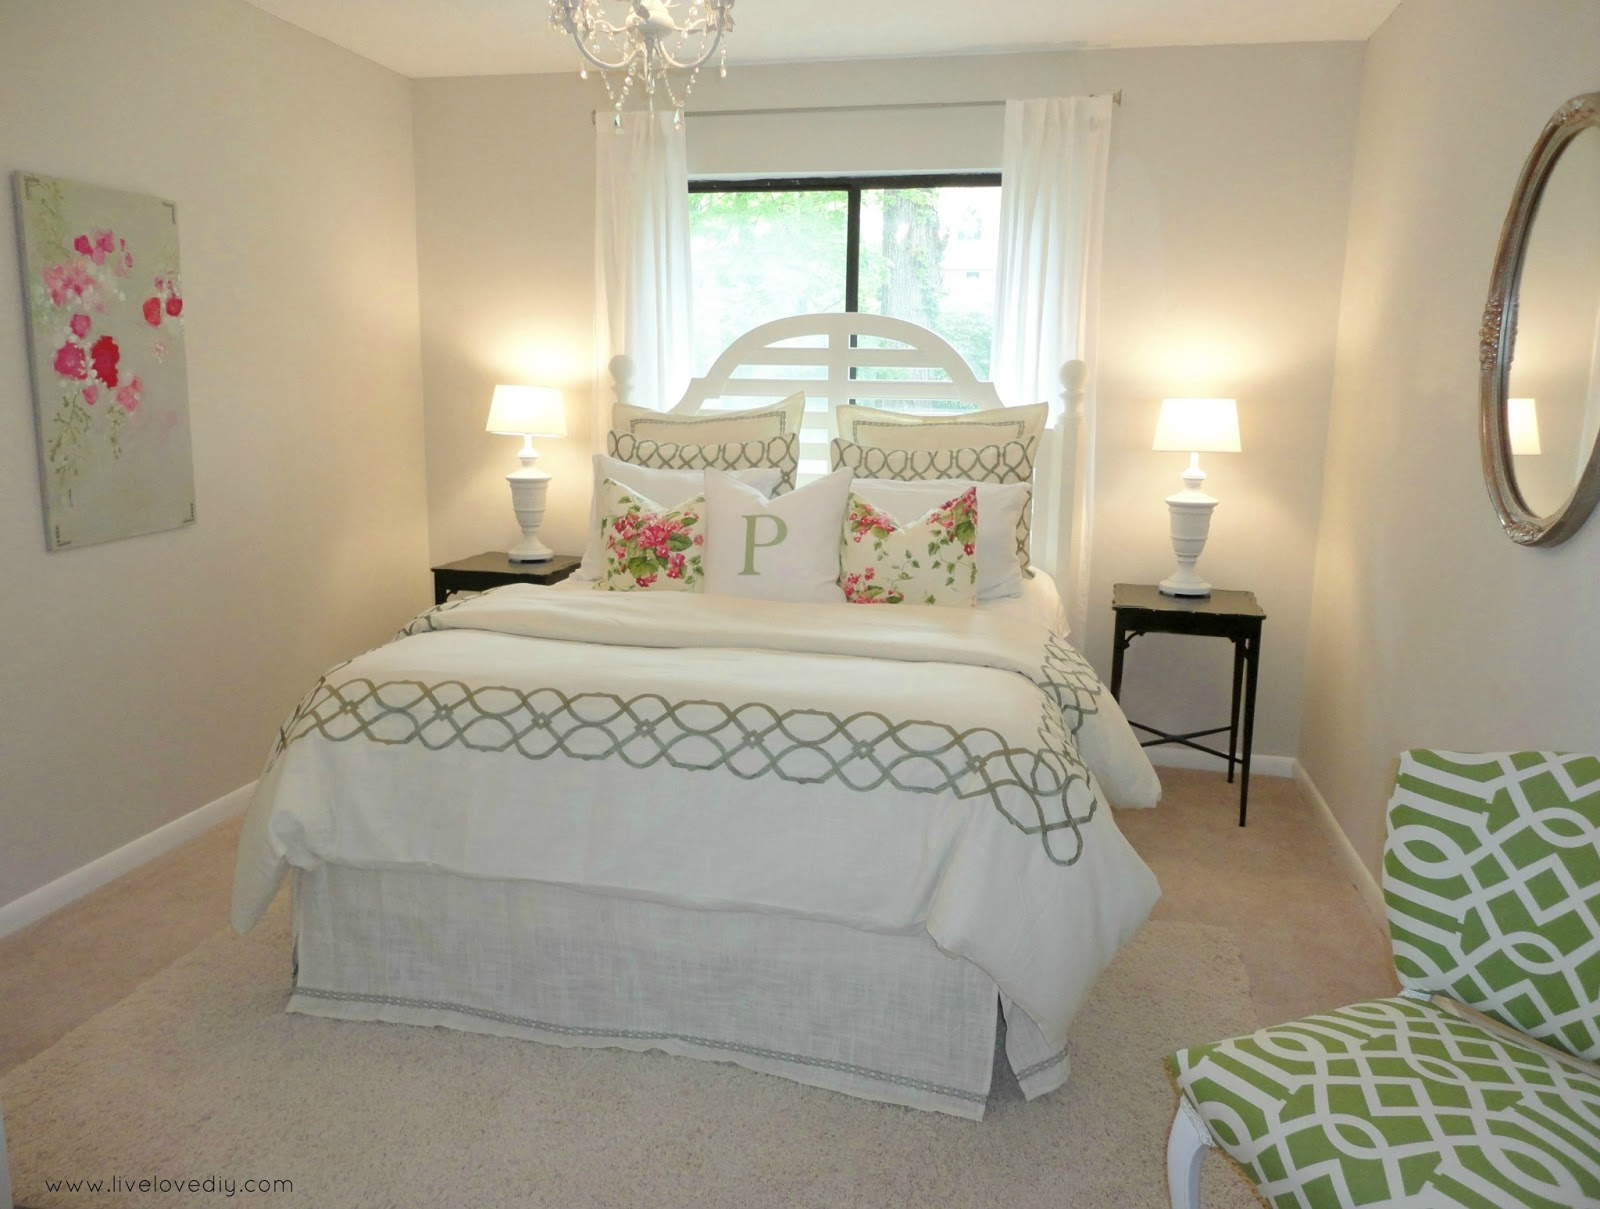 decorating bedrooms with secondhand finds the guest bedroom reveal - Decorate Bedroom Ideas